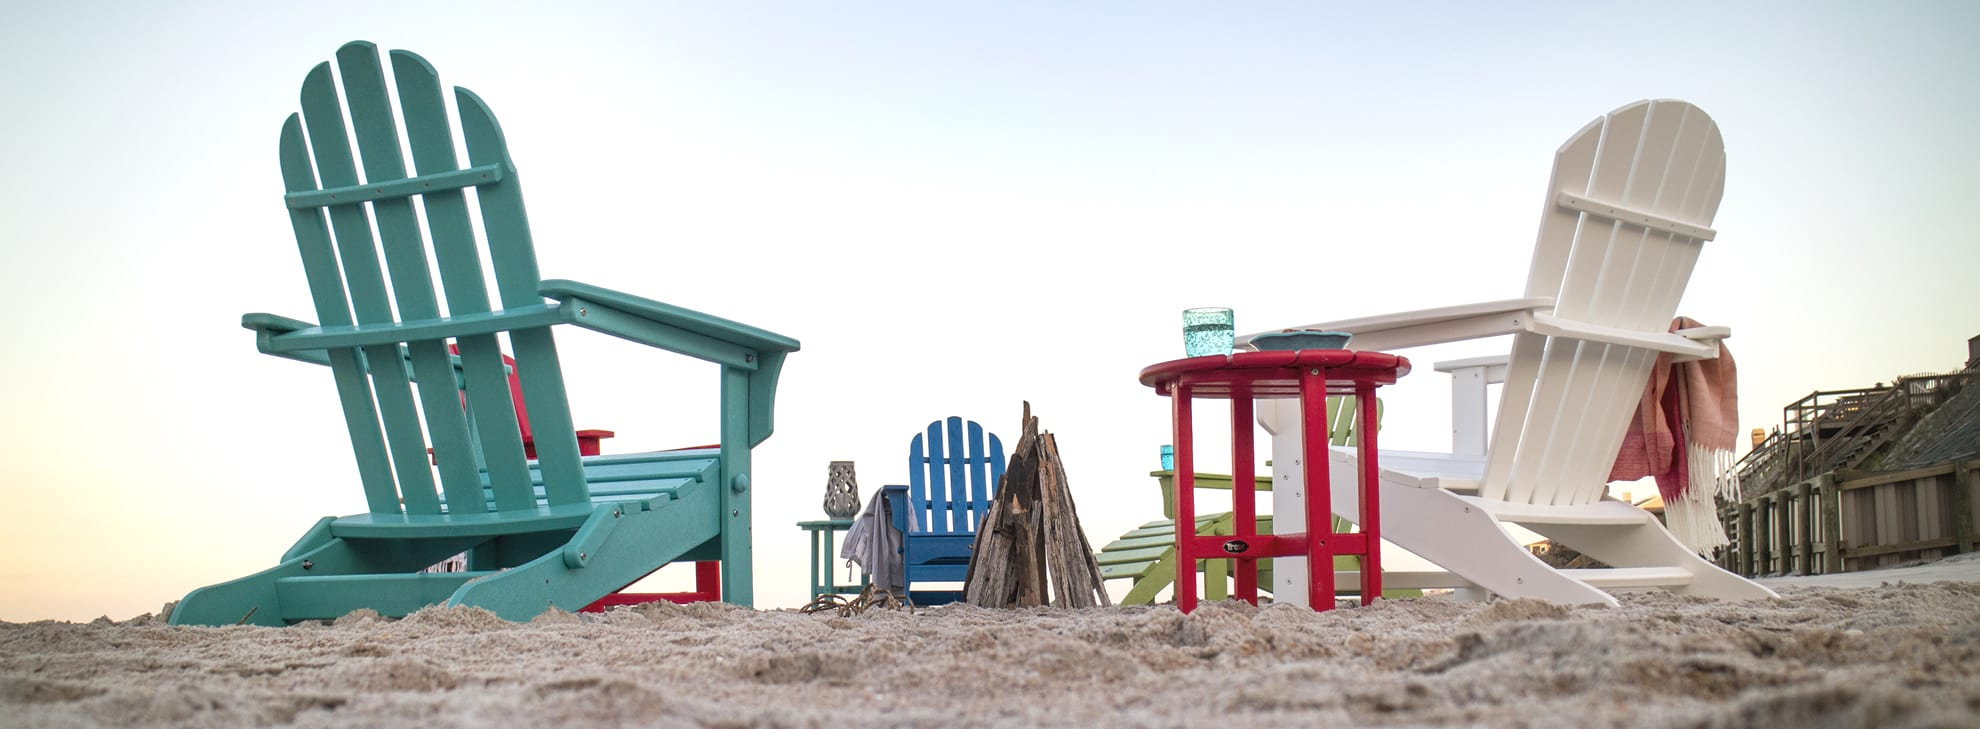 Adirondack Chairs on a beach